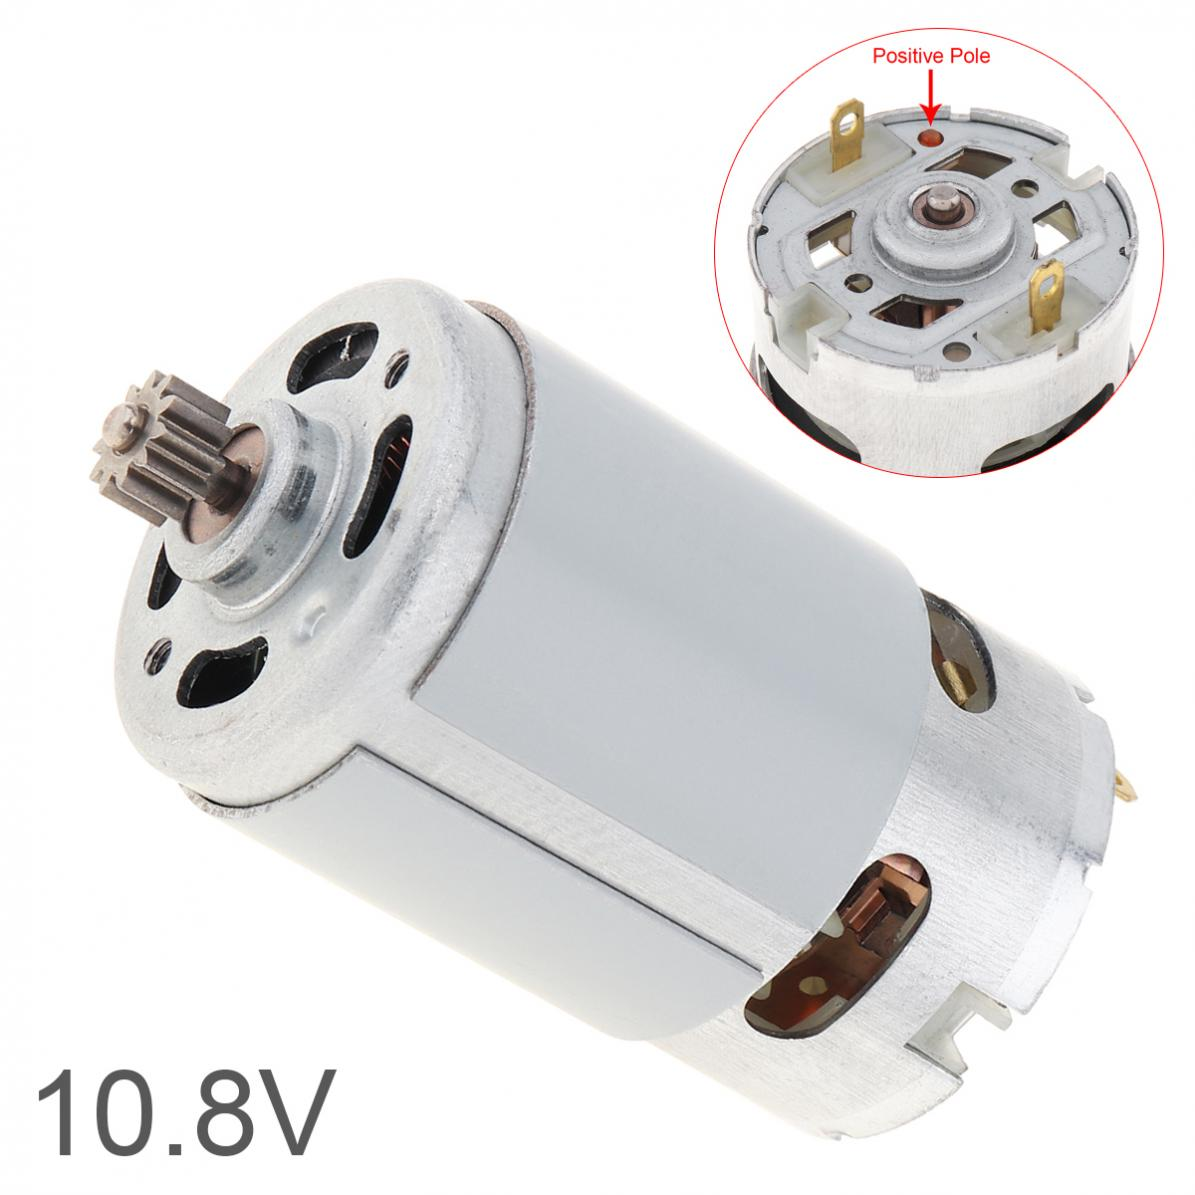 RS550 10.8V 19500 RPM DC Motor with Two-speed 11 Teeth and High Torque Gear Box for Cordless Charge Drill Screwdriver rs550 dc motor 12v 16 8v 21v 25v 19500 rpm dc motor two speed 9 12 teeth high torque gear box for electric drill screwdriver